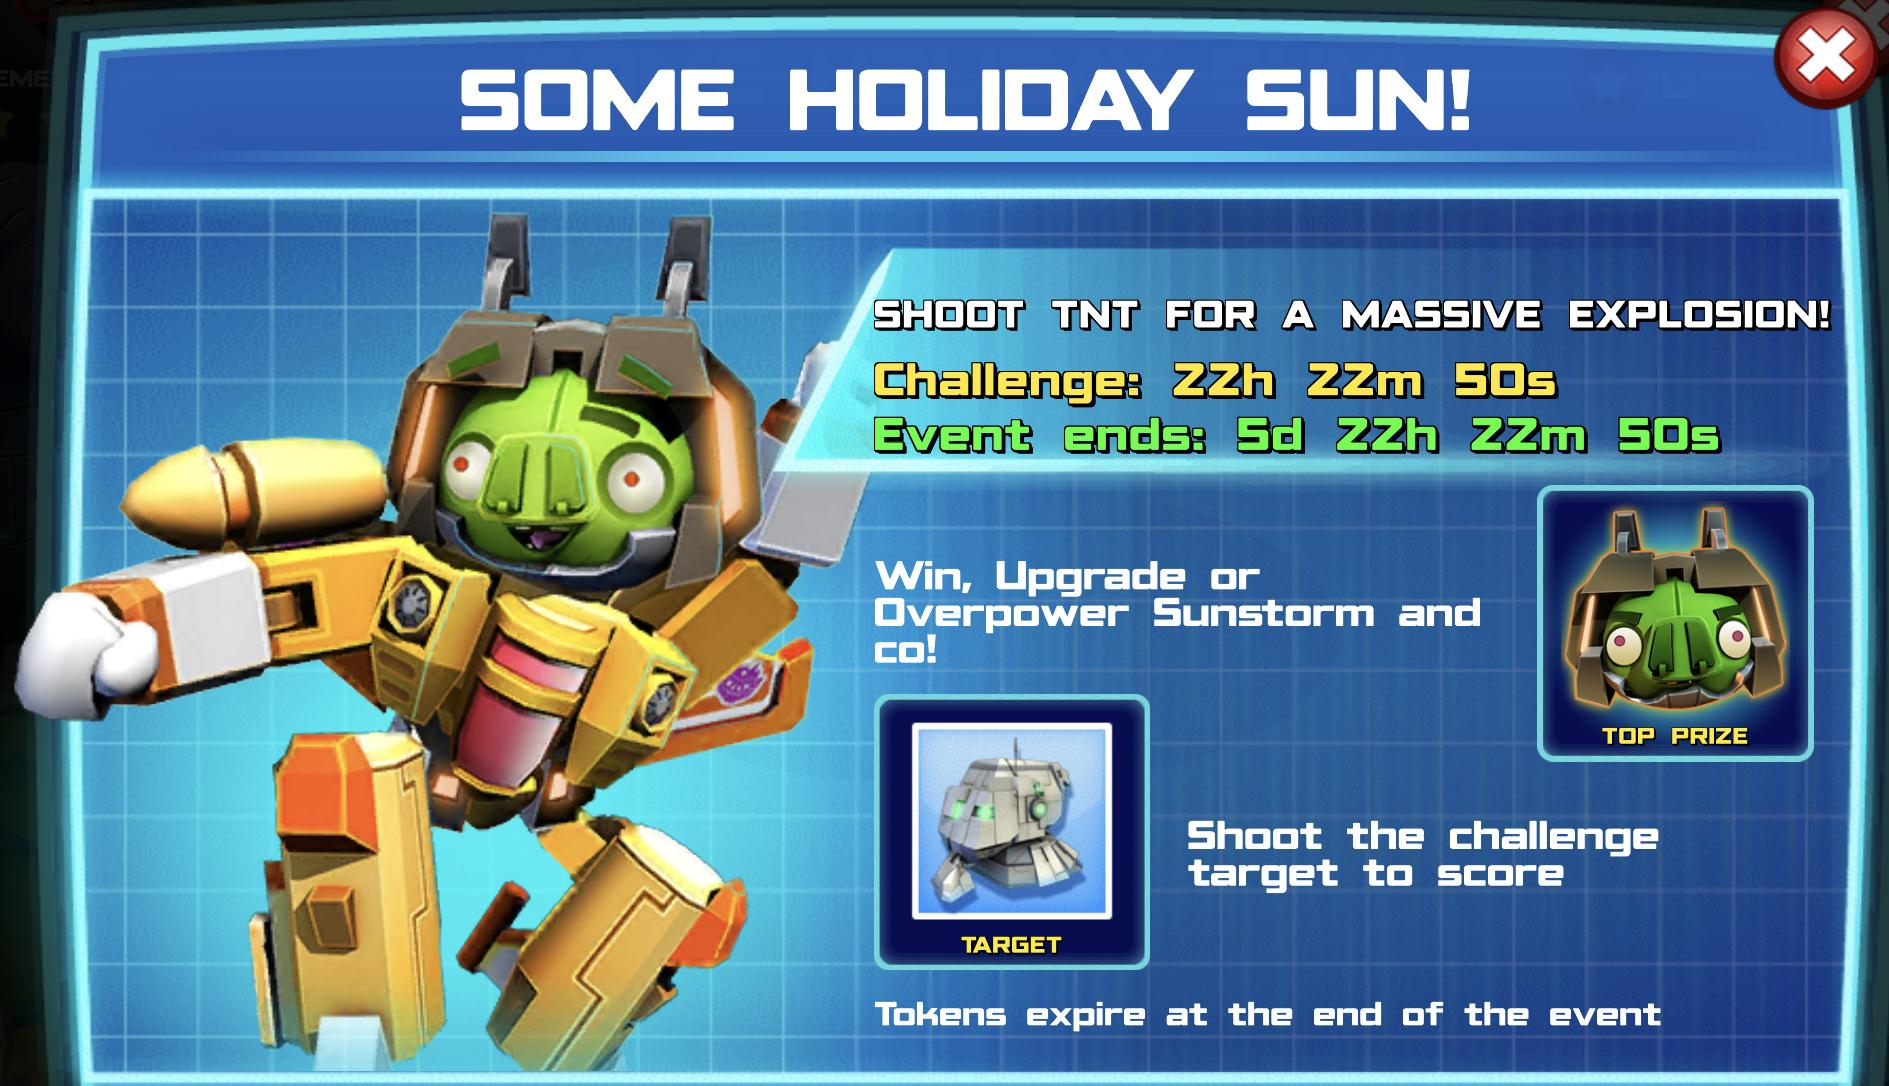 The event banner for SoMe Holiday sun!